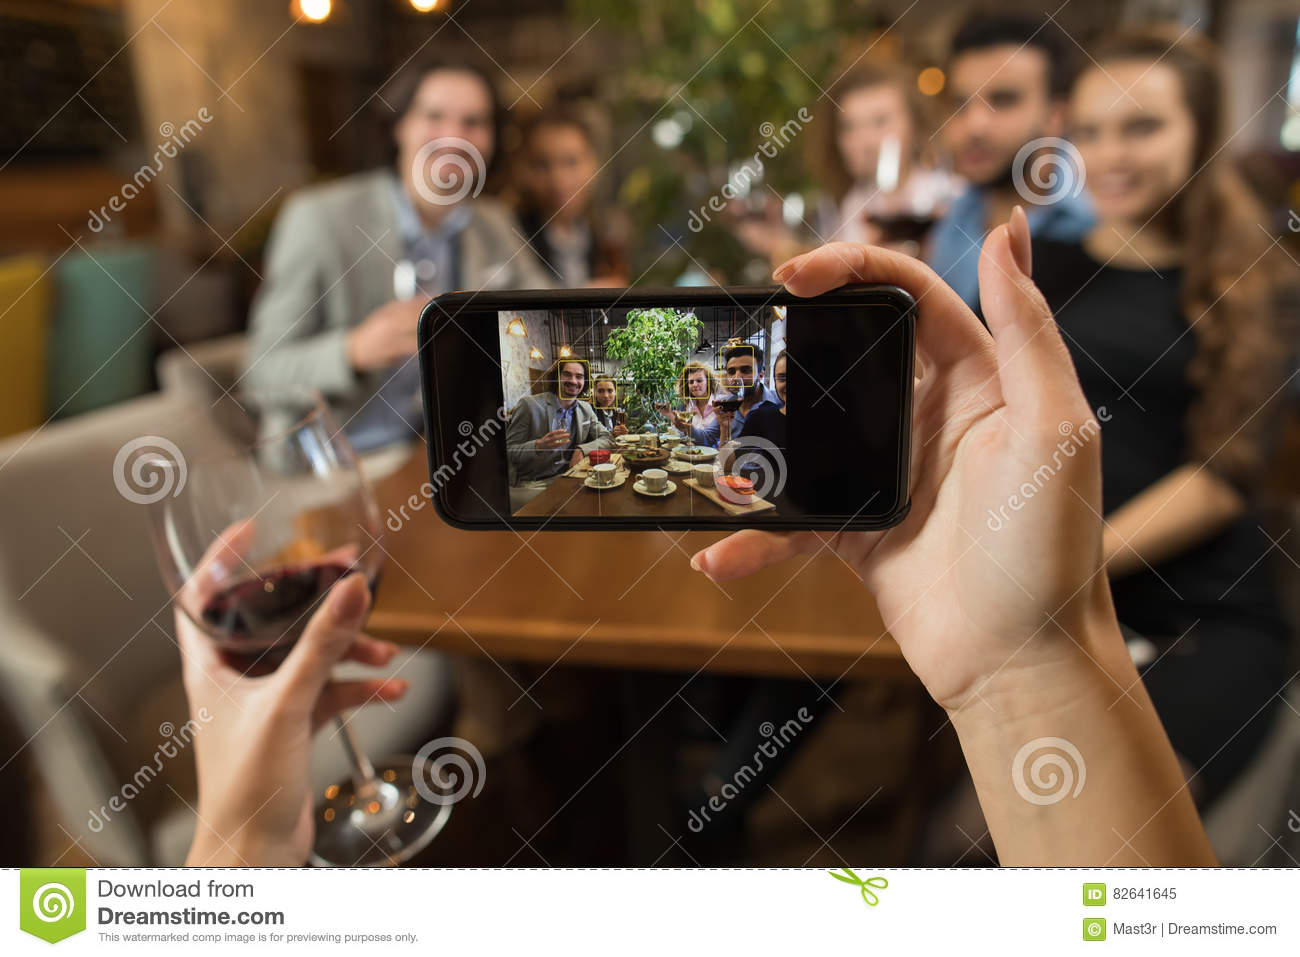 Businesswoman Taking Selfie Young Business People Group Drink Wine Sitting Restaurant Table, Friends Hold Glasses Clink